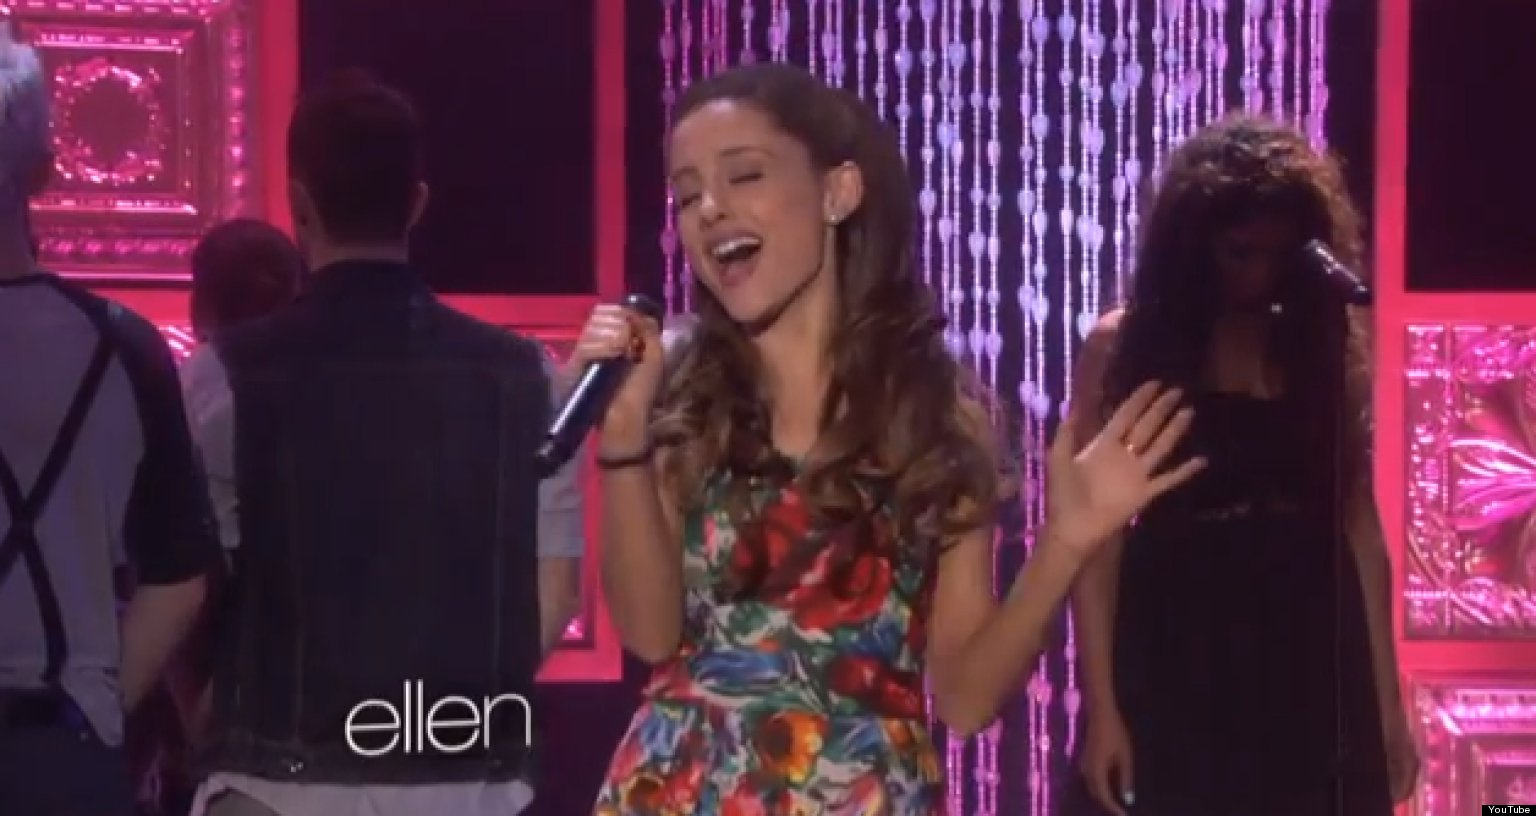 Ariana Grande Tumblr Collage 2014 Ariana Grande  Ellen  Video